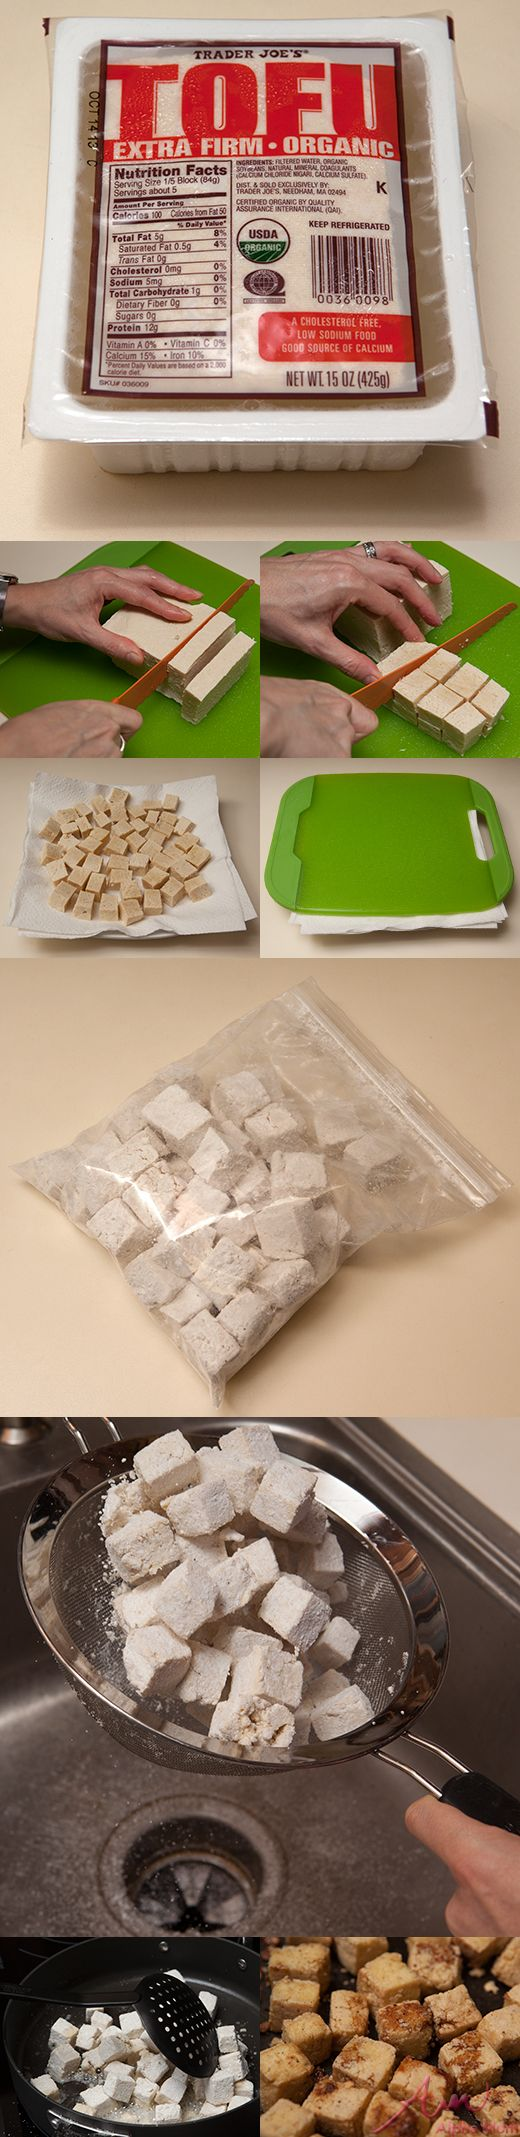 Fool-Proof Tofu Preparation: This simple tofu preparation will convert you. You think that you don't like tofu, but that might be because you don't know how to coax great texture out of it.